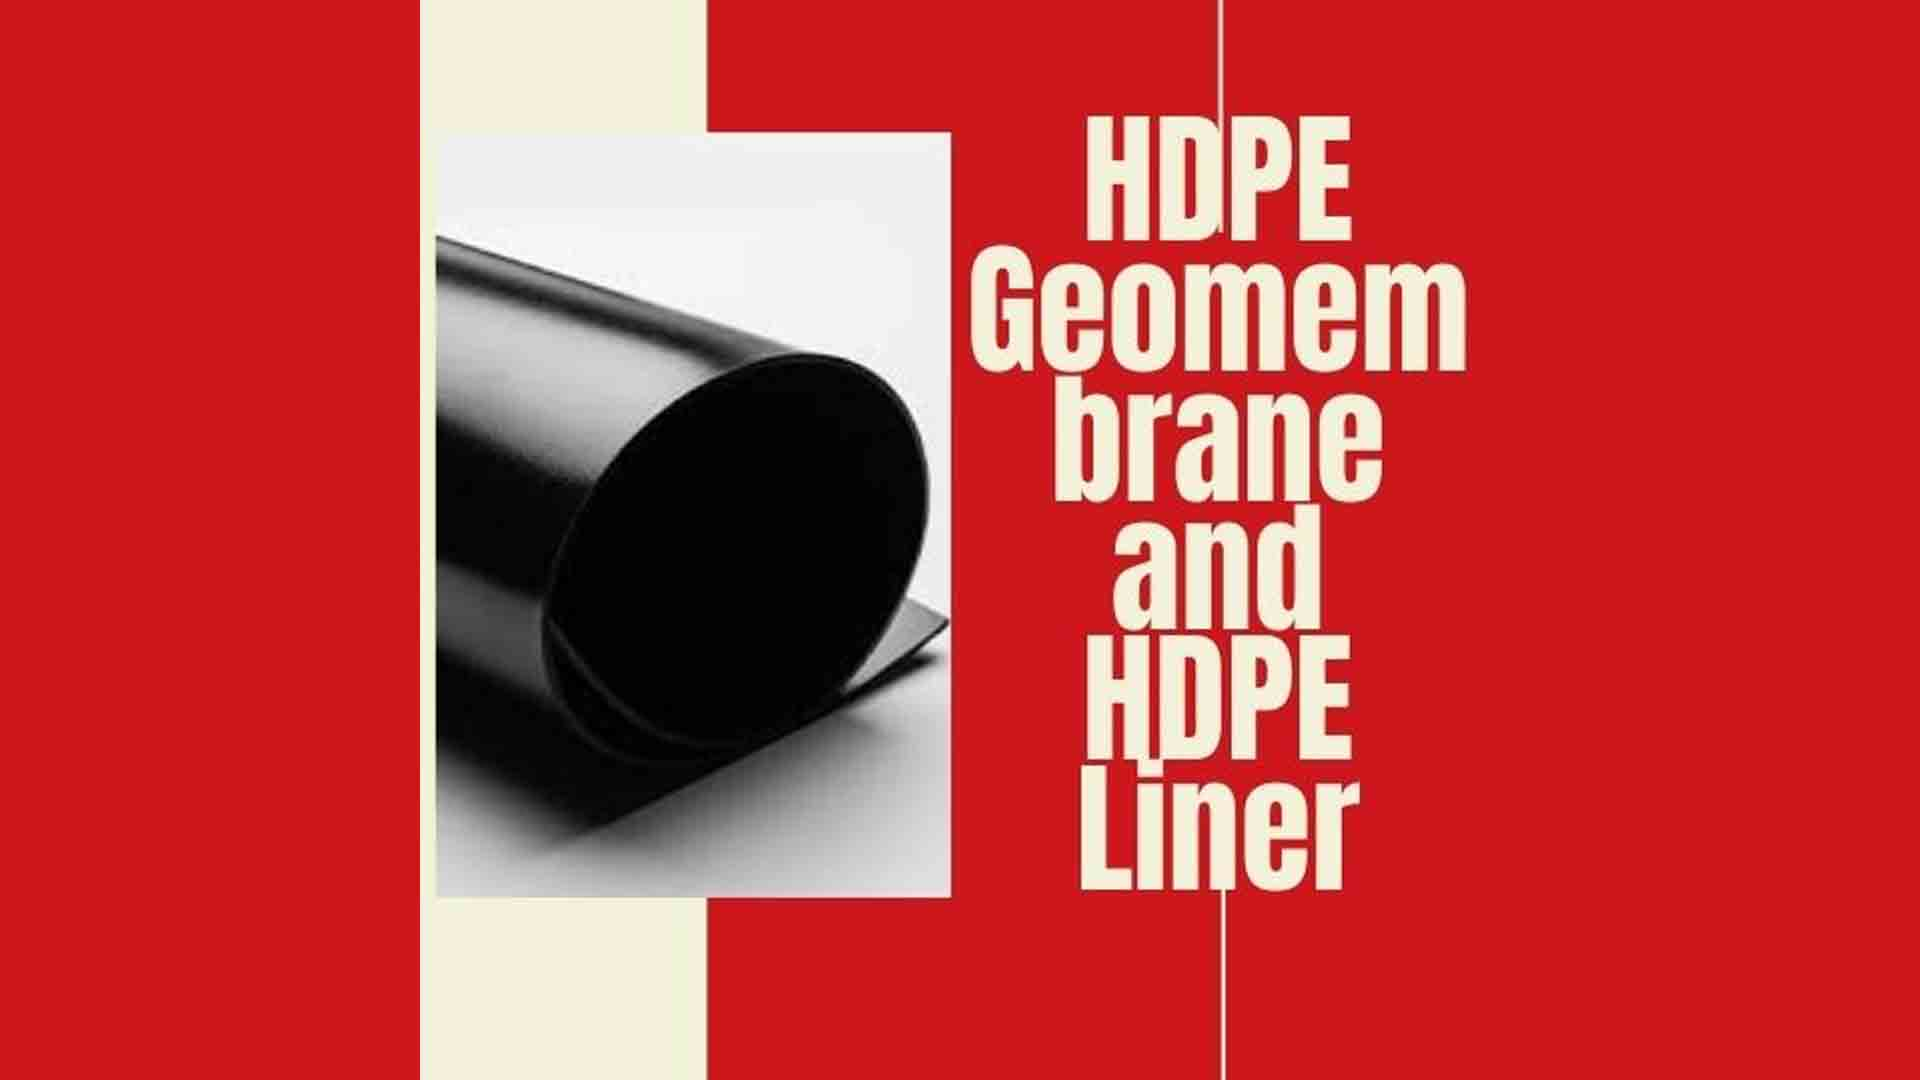 HDPE Geomembrane and HDPE Liner